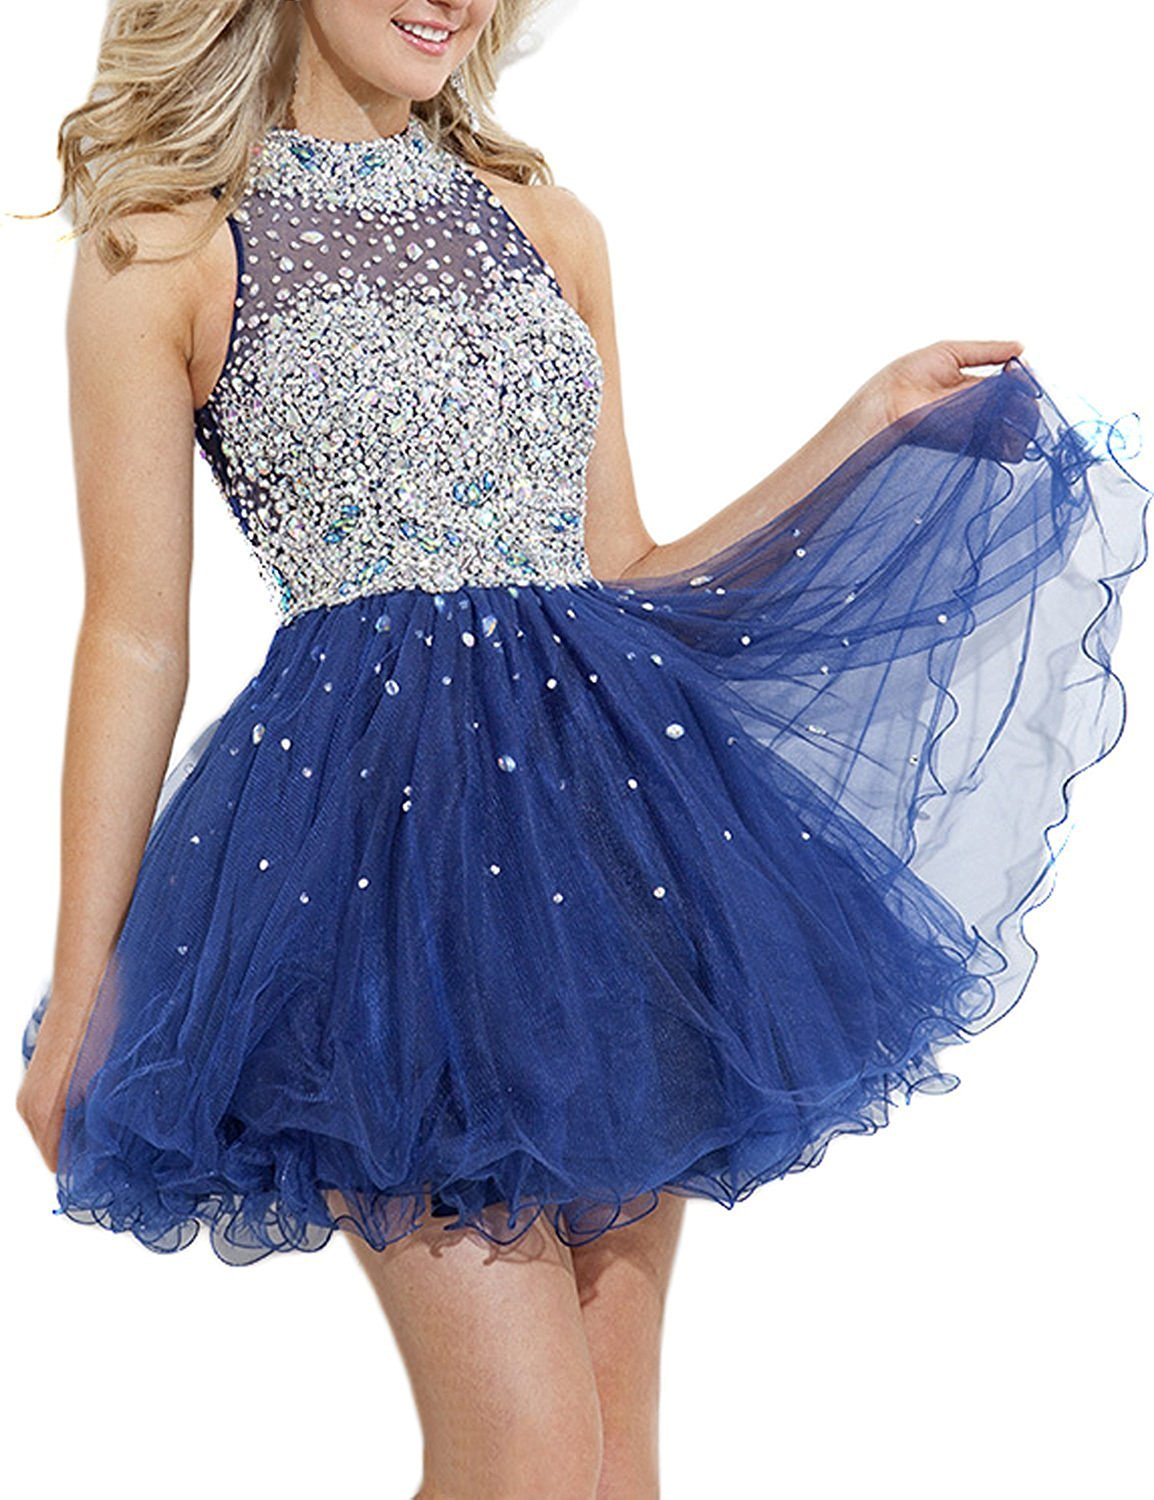 Primary image for Short Prom Dresses Royal Blue 2017 Sexy A Line High Neck Tulle Homecoming Dress